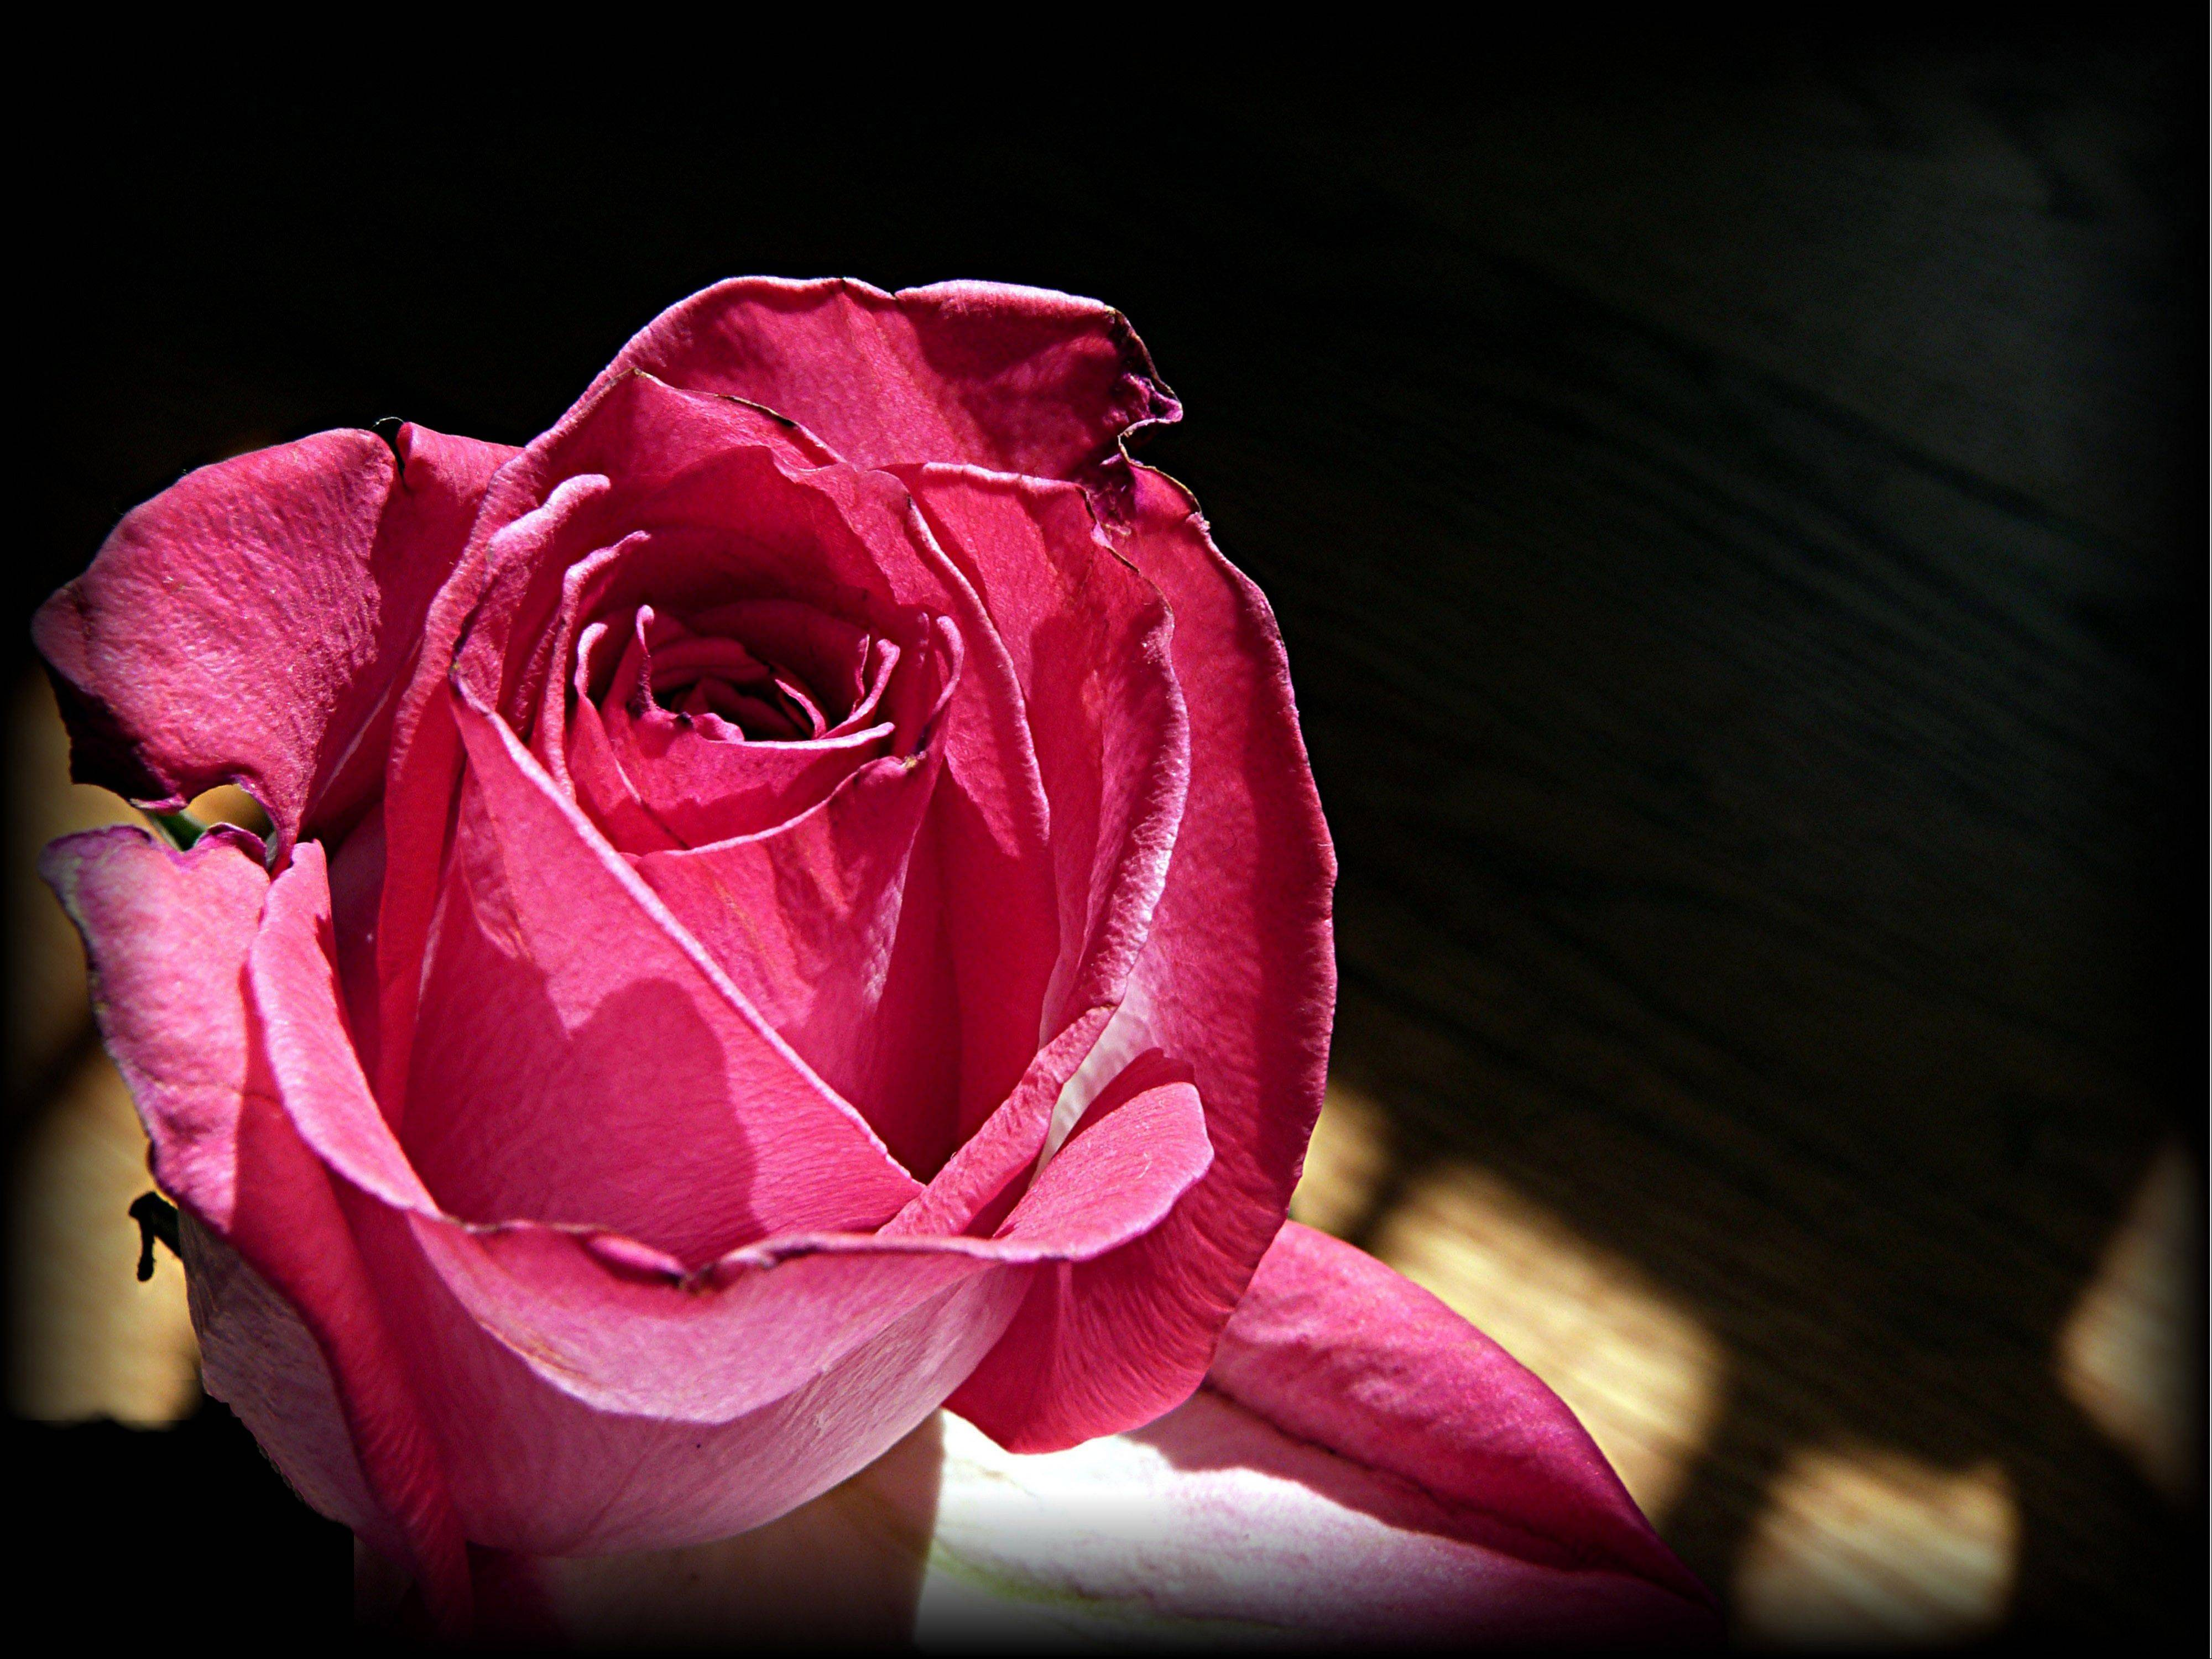 A single rose left after Valentine's Day with signs of age but its fragrance not waning.